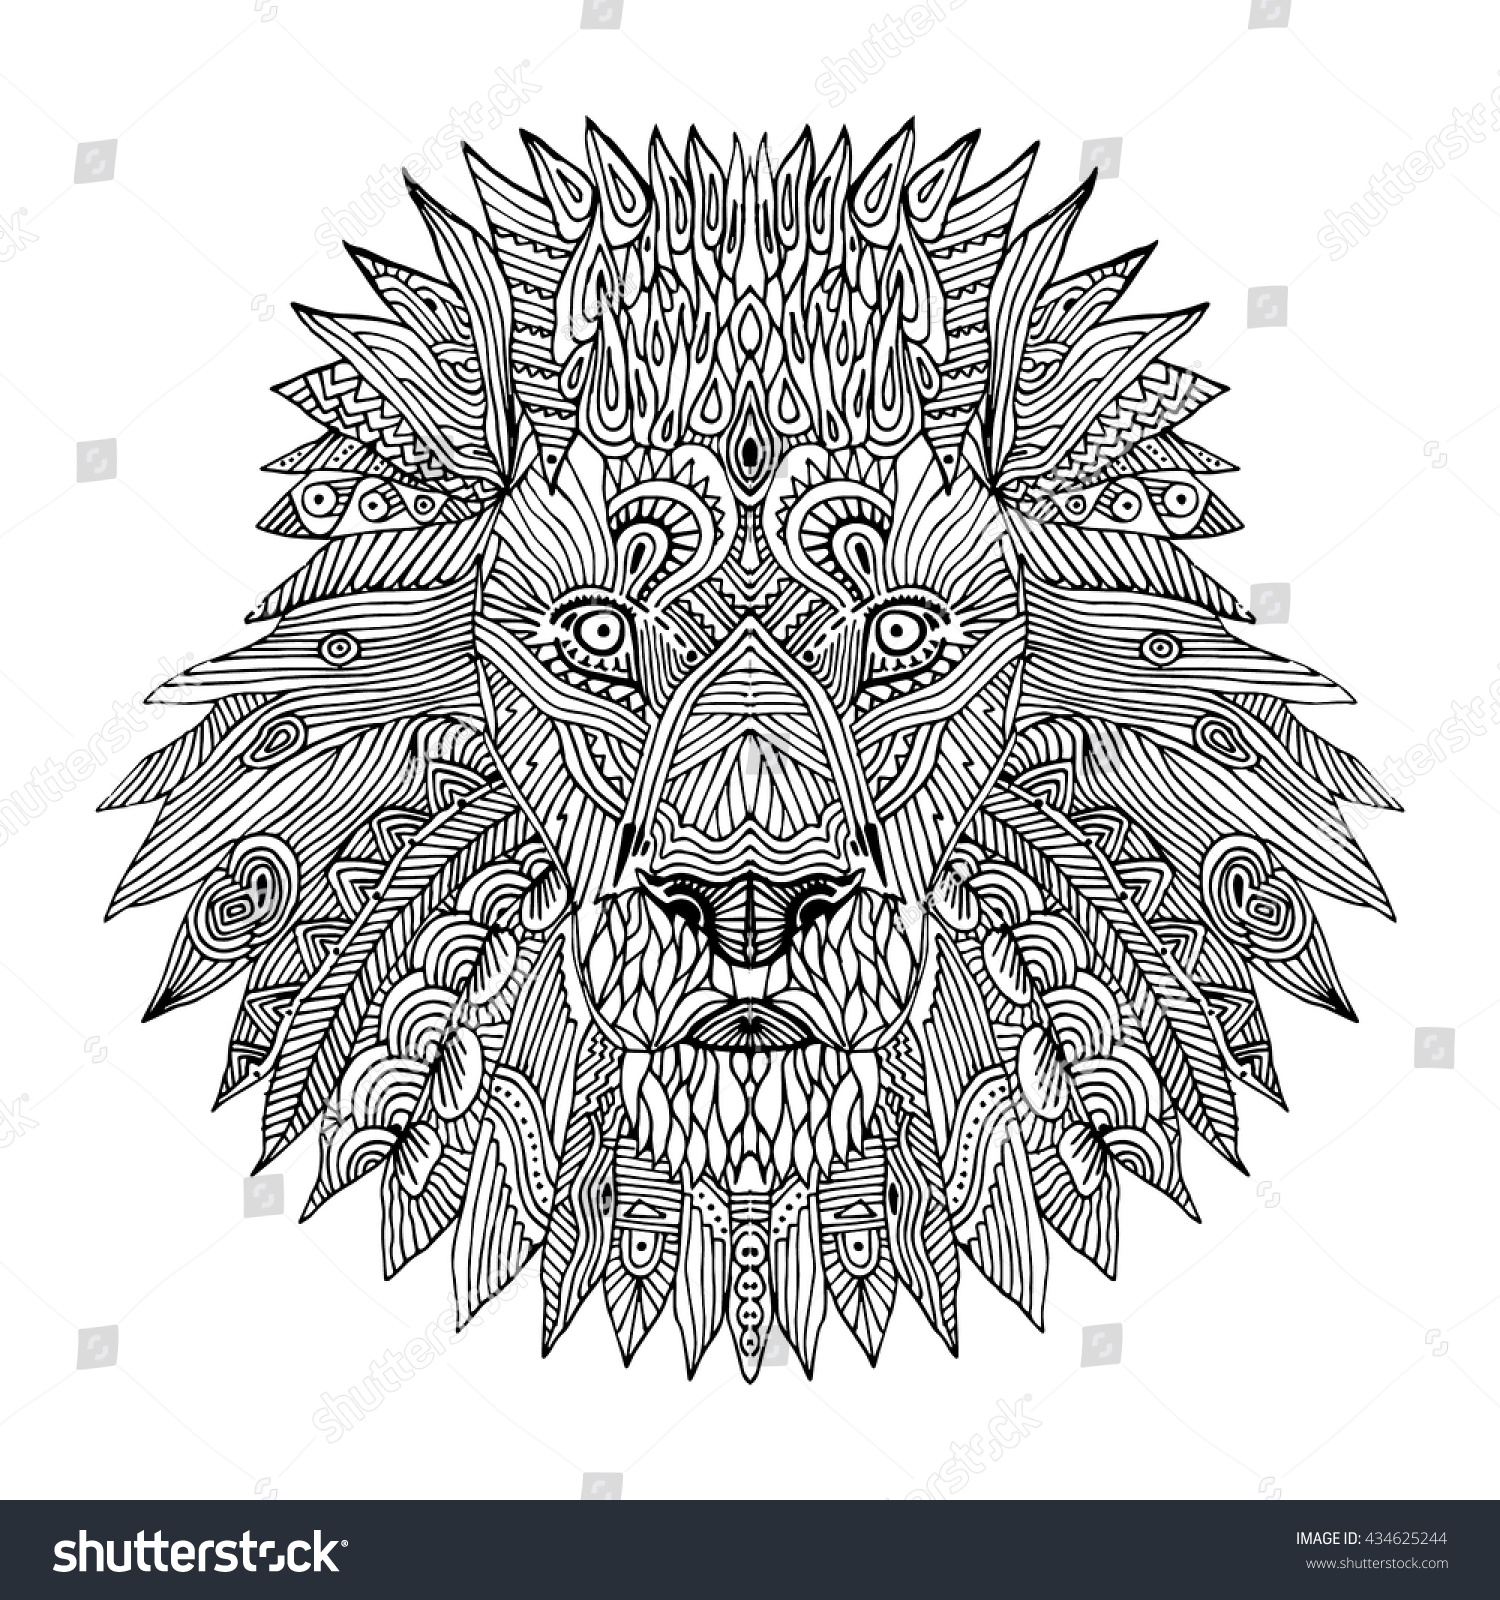 Coloring book for adults lion - Anti Stress Coloring Book Lion Zentangle Lion Hand Drawn Picture For Adult Antistress Coloring Page